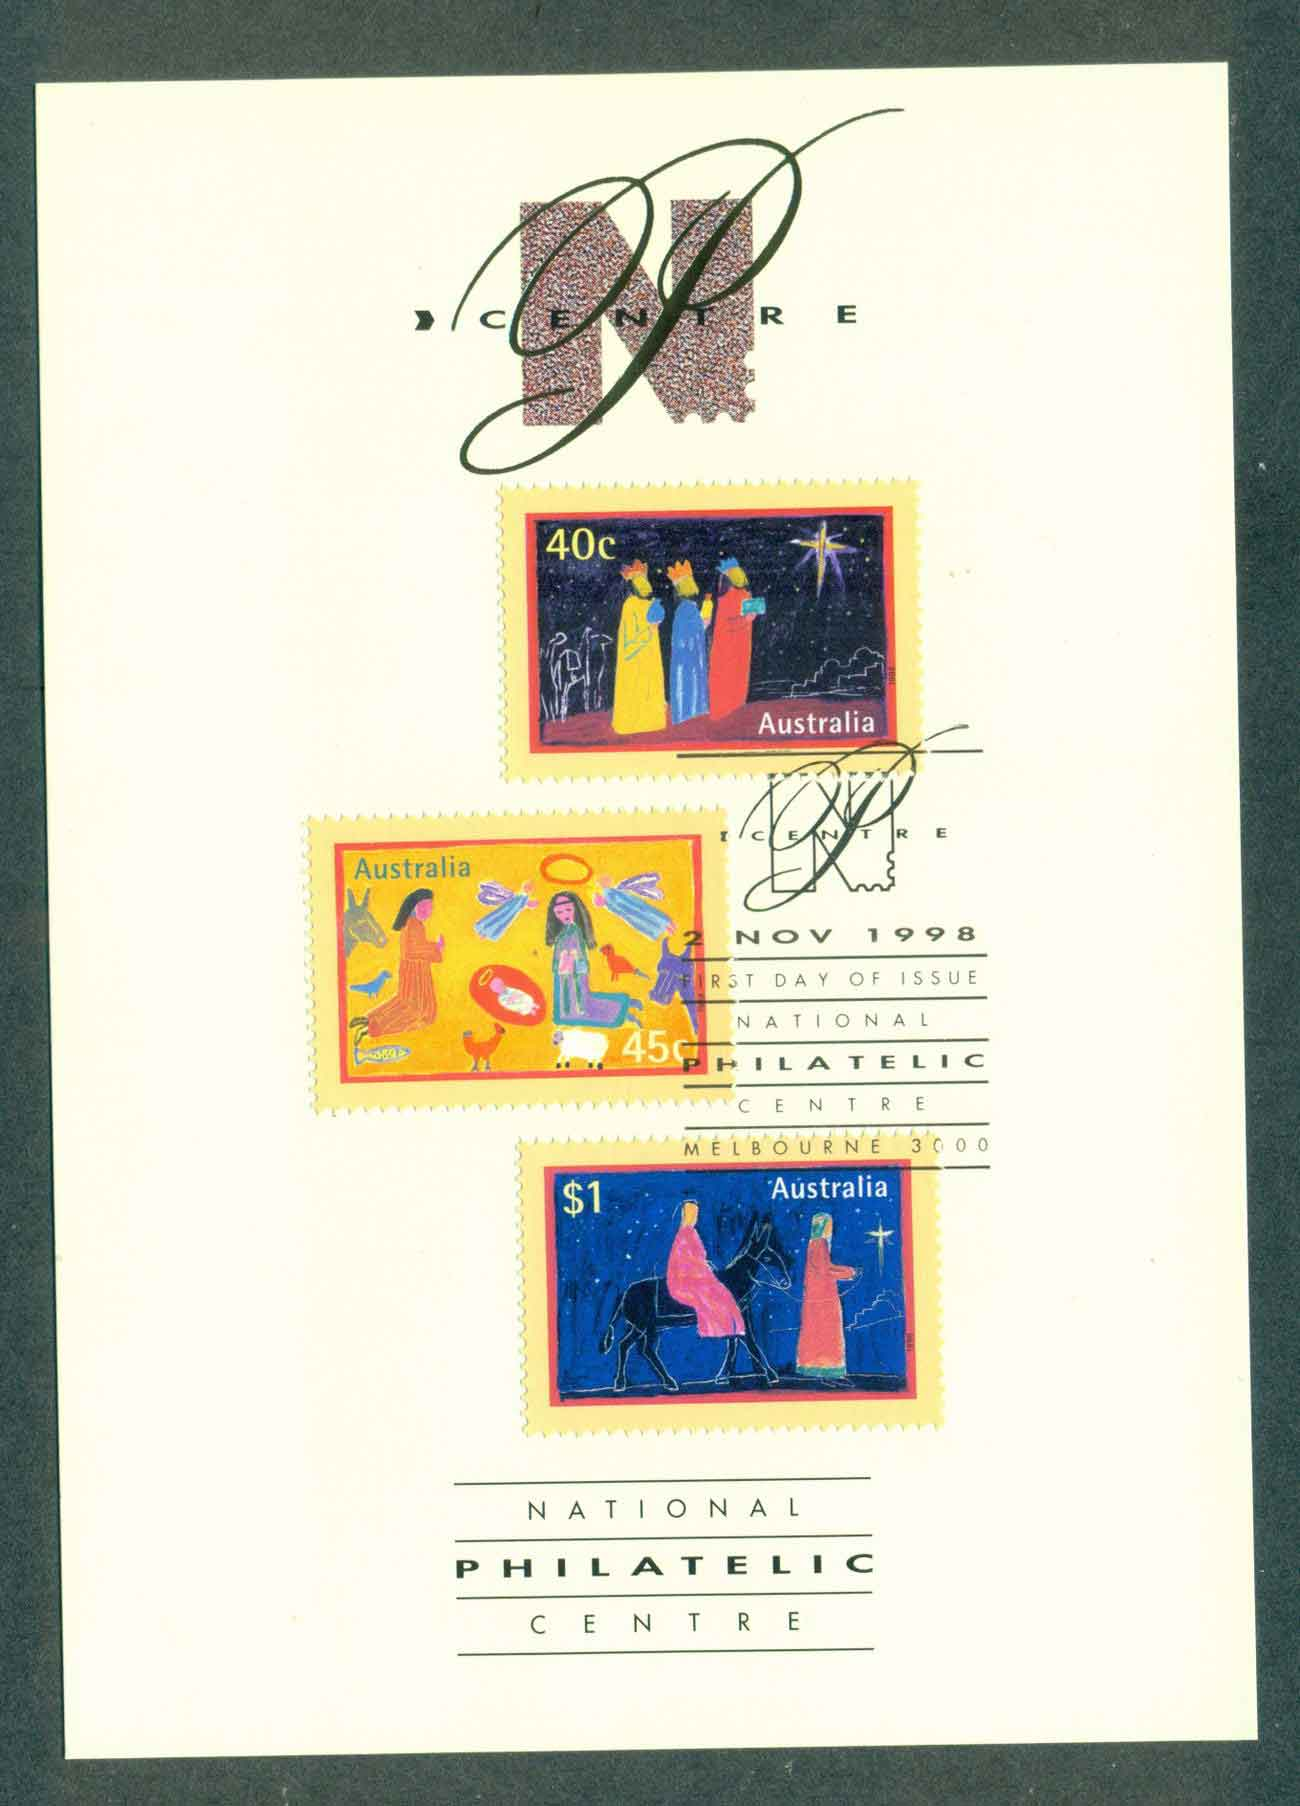 Australia 1998 Xmas Philatelic card, NPC FDC lot51216